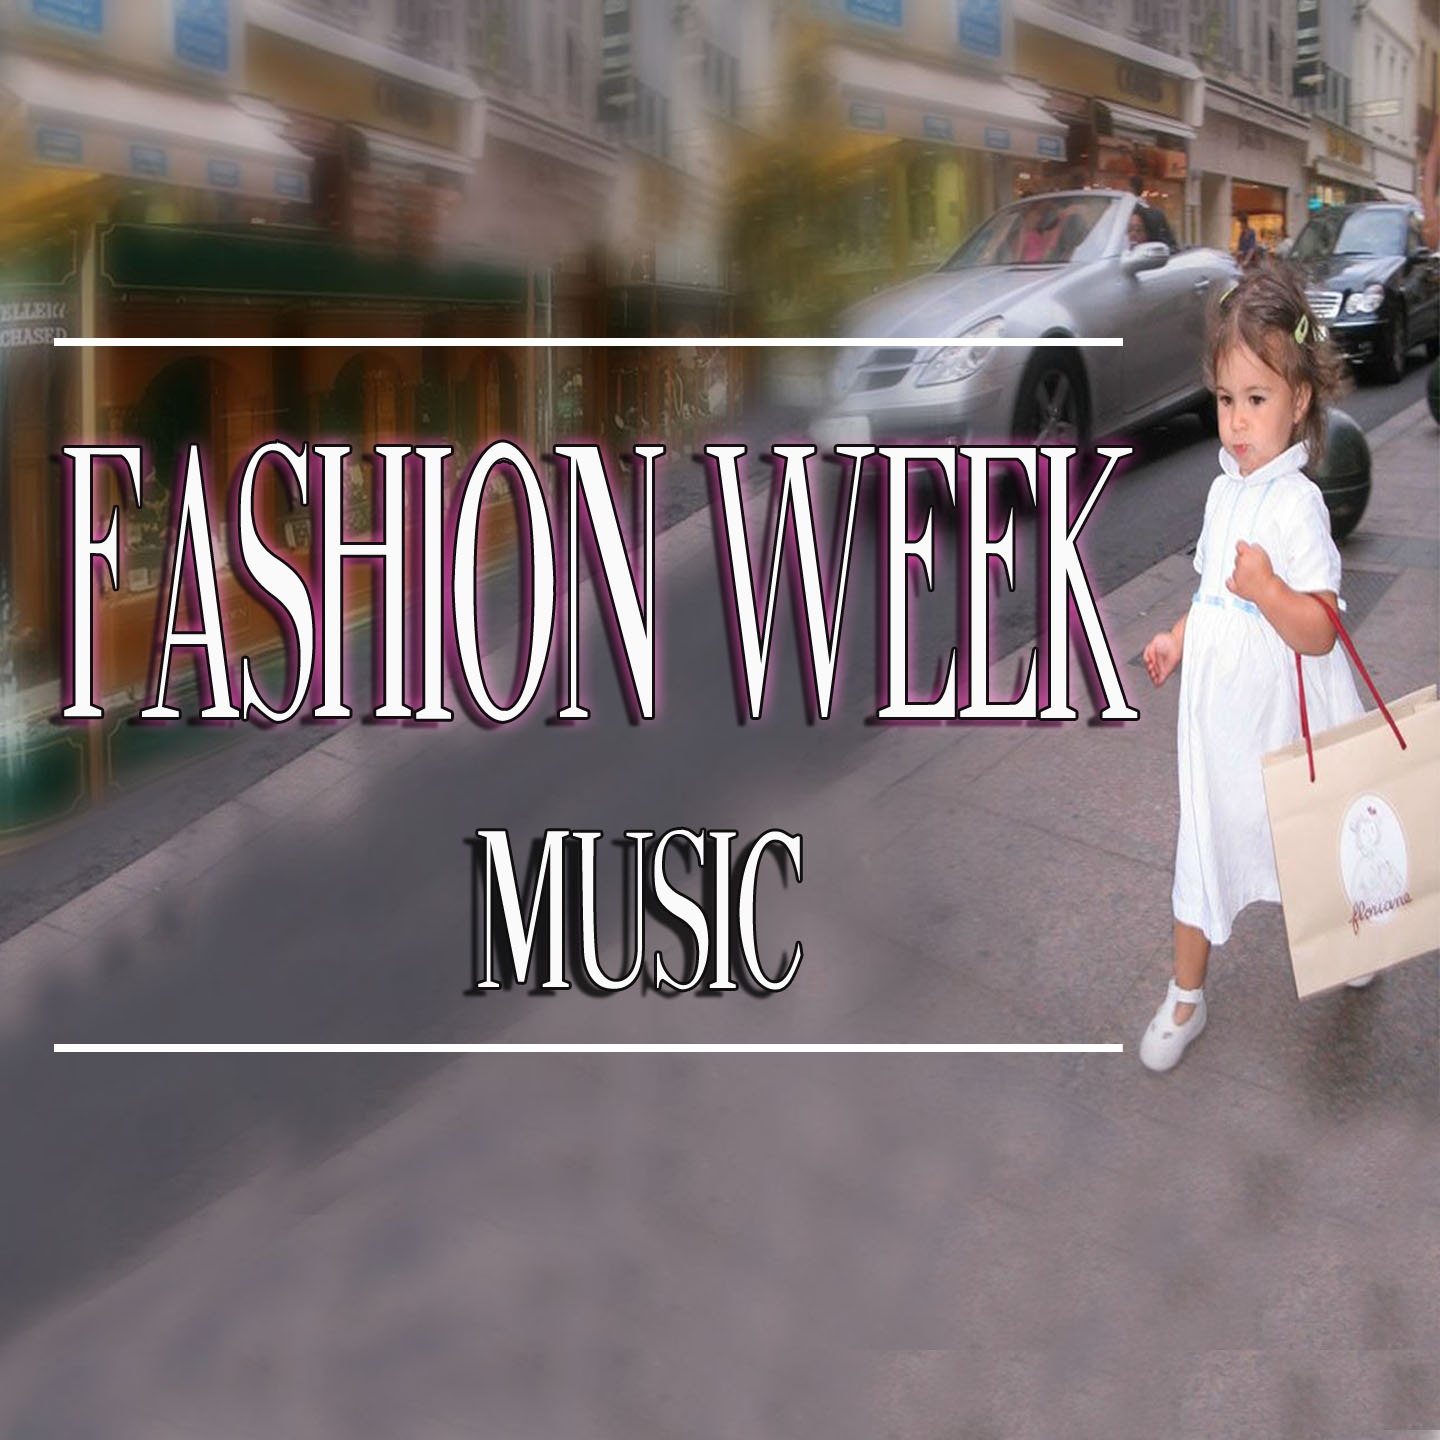 Fashion Week Music